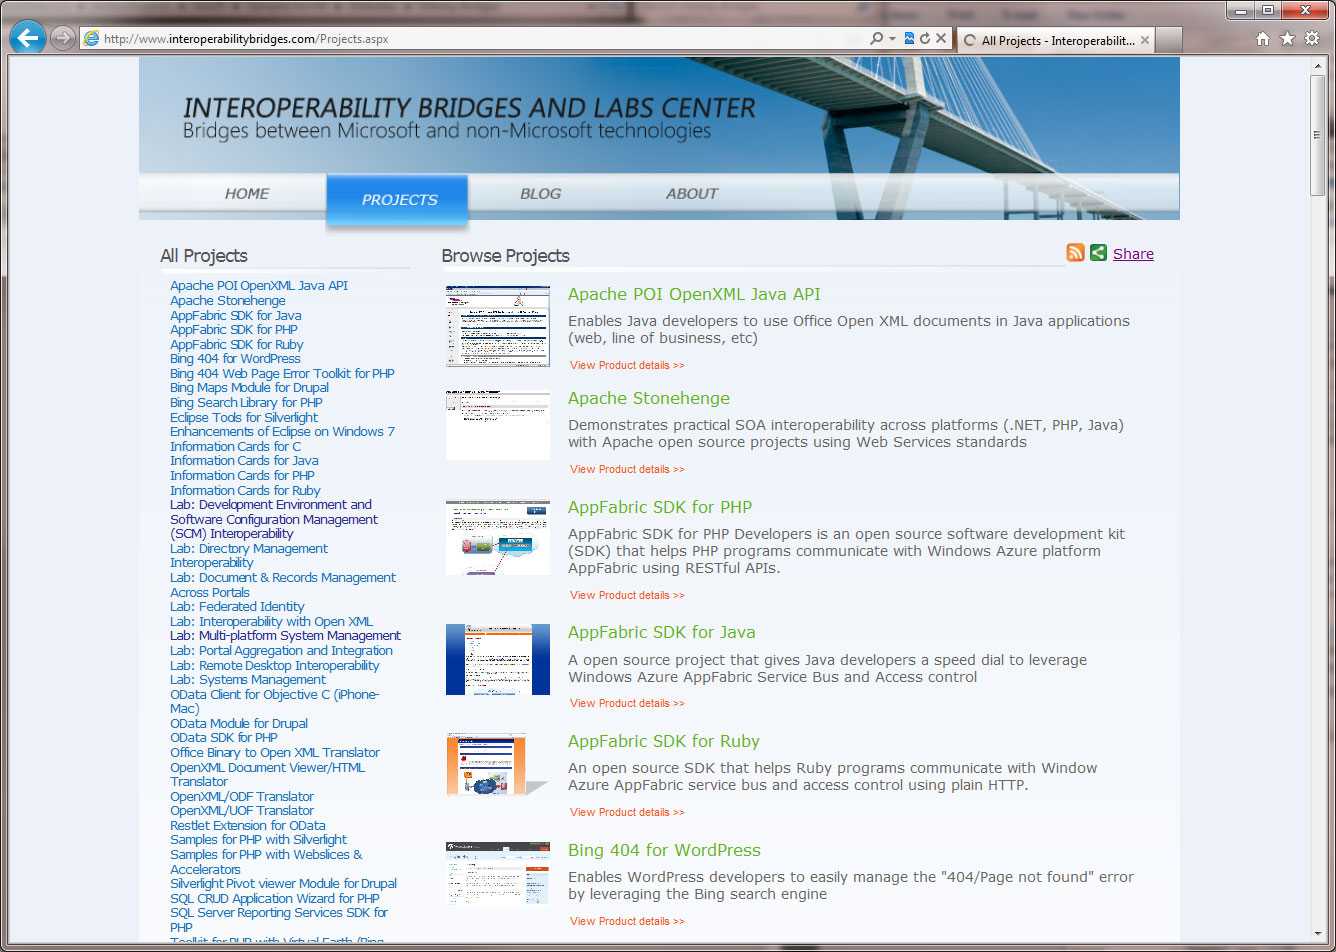 Interoperability Bridges Website - Microsoft